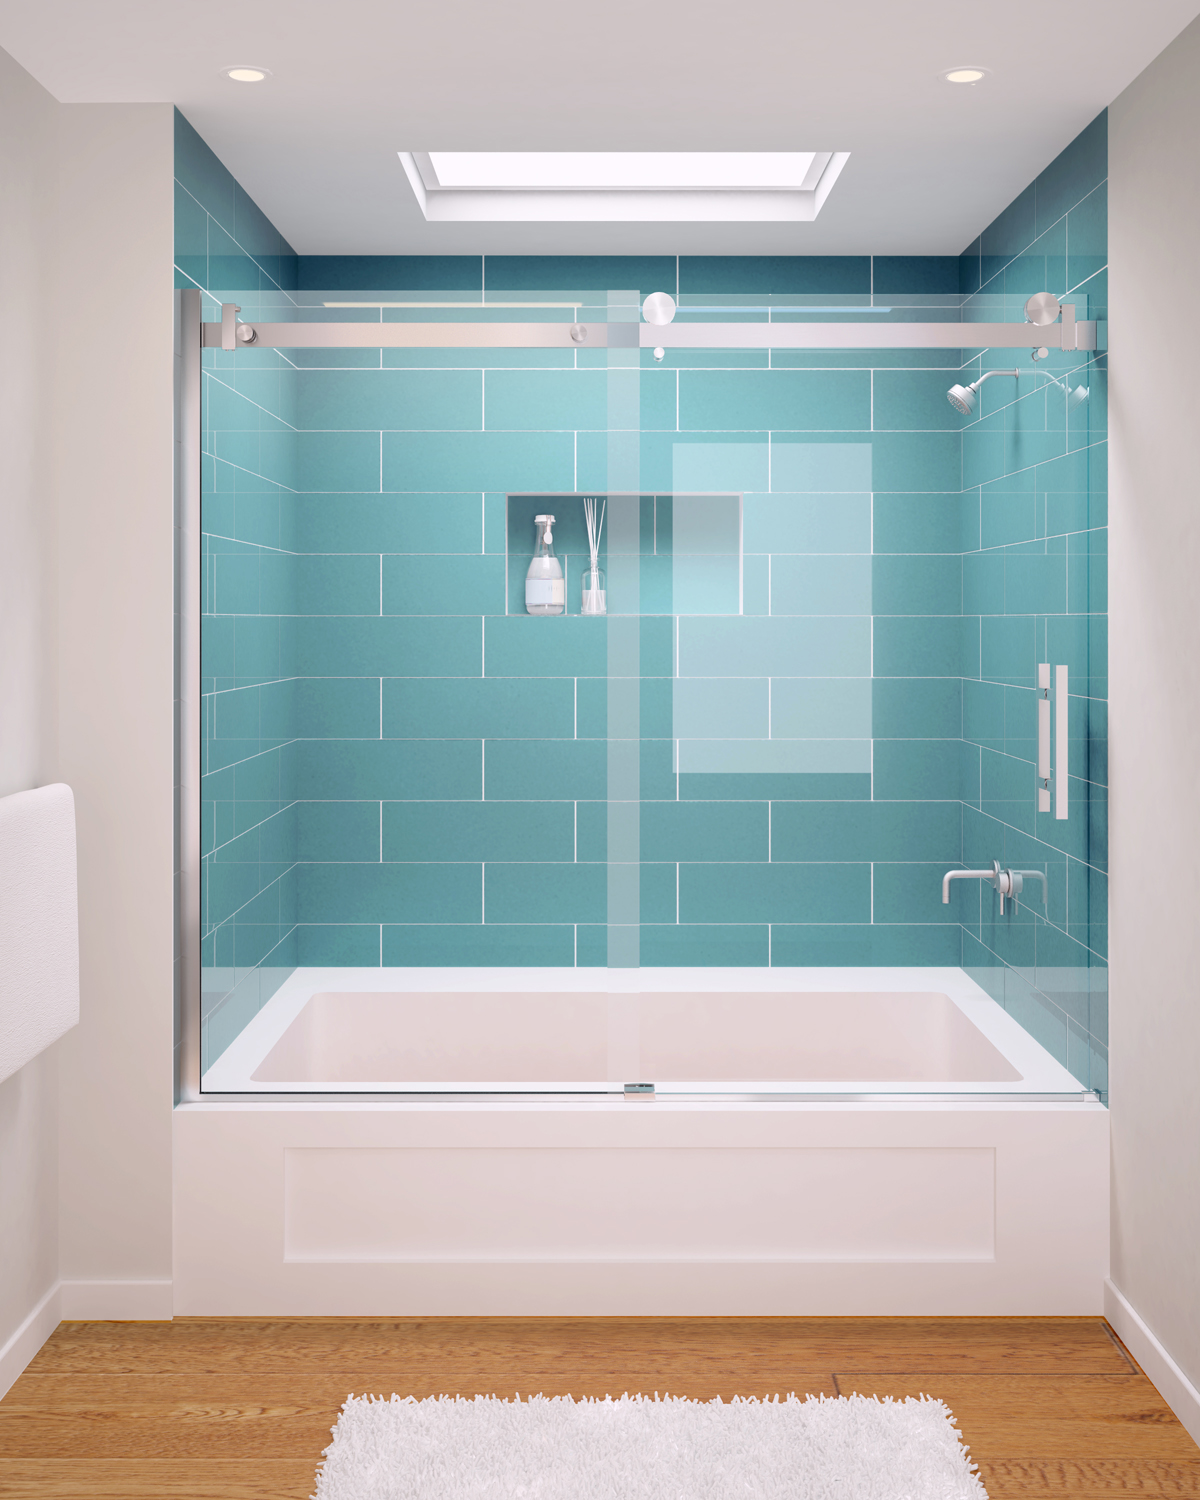 Semi Frameless Shower Enclosures frameless vs semi-frameless vs framed shower enclosures